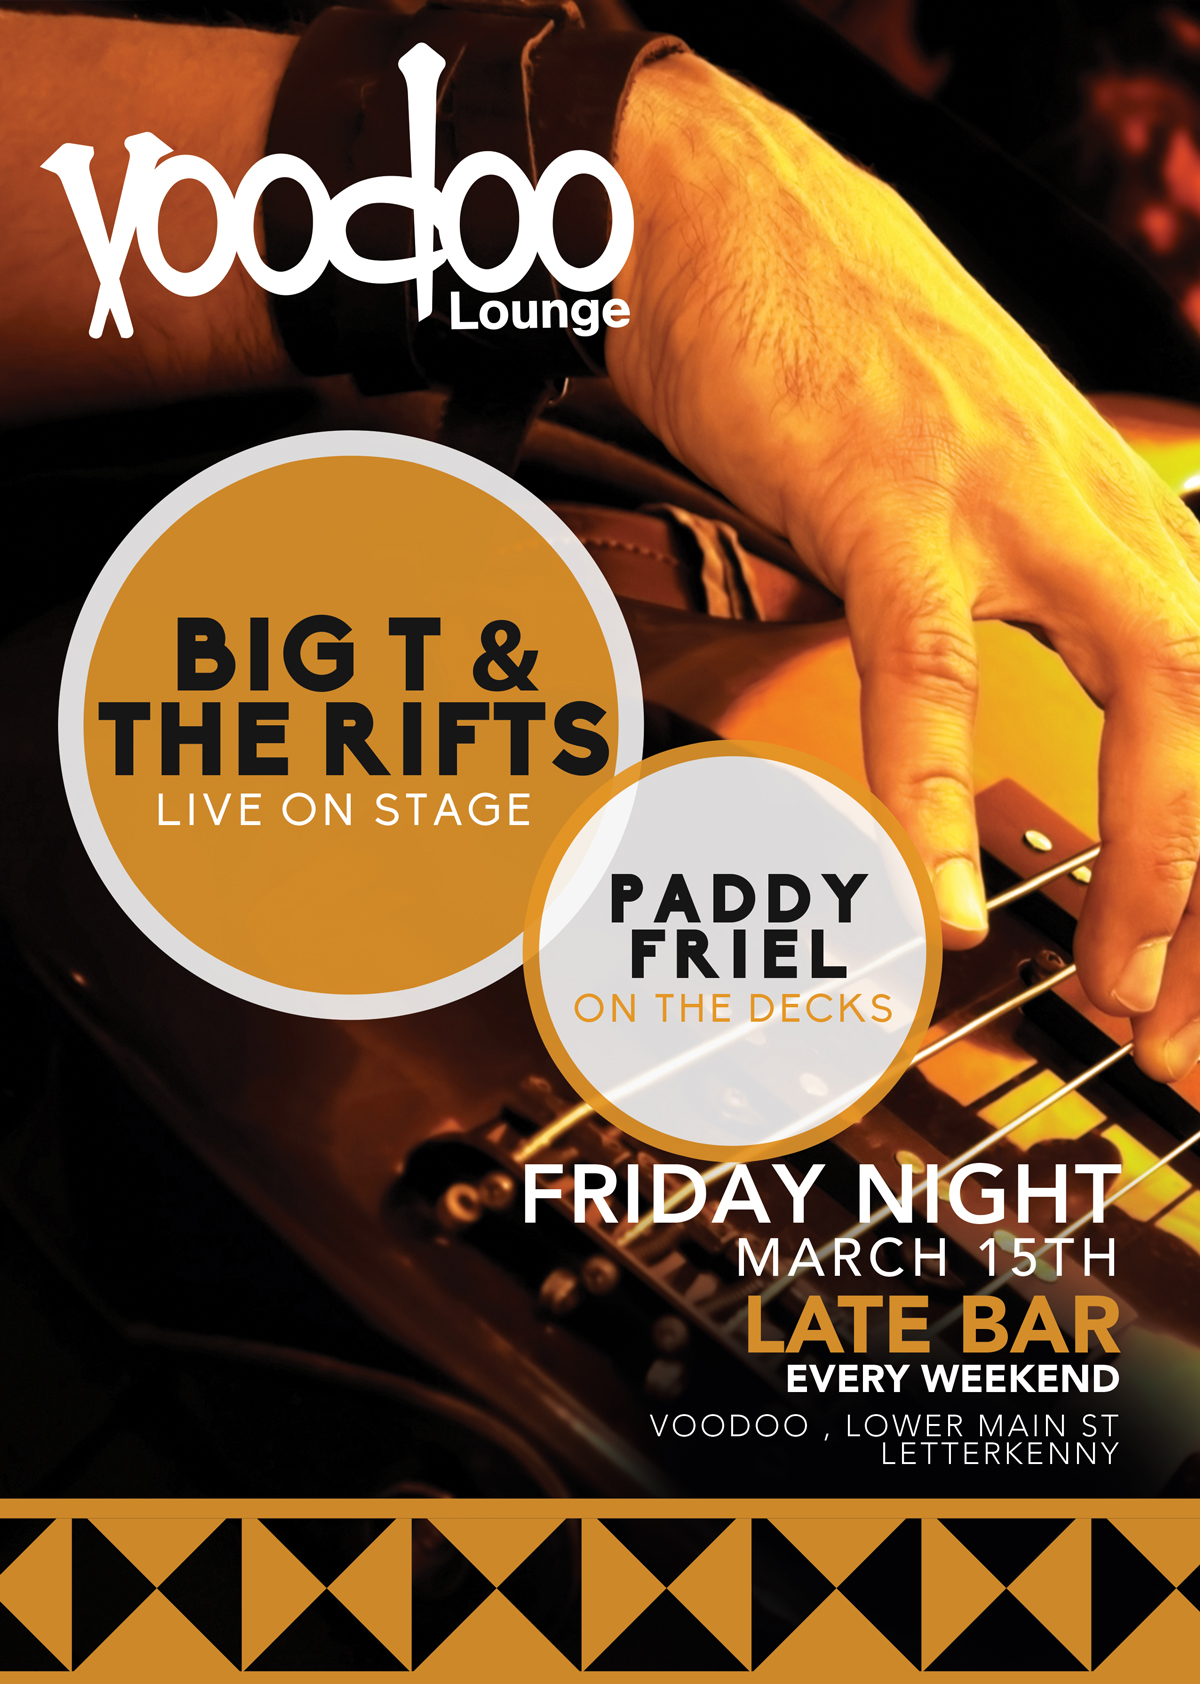 voodoo-lounge---BIG-T-AND-THE-RIFTS----paddy-friel---fri-march-15-2019.jpg